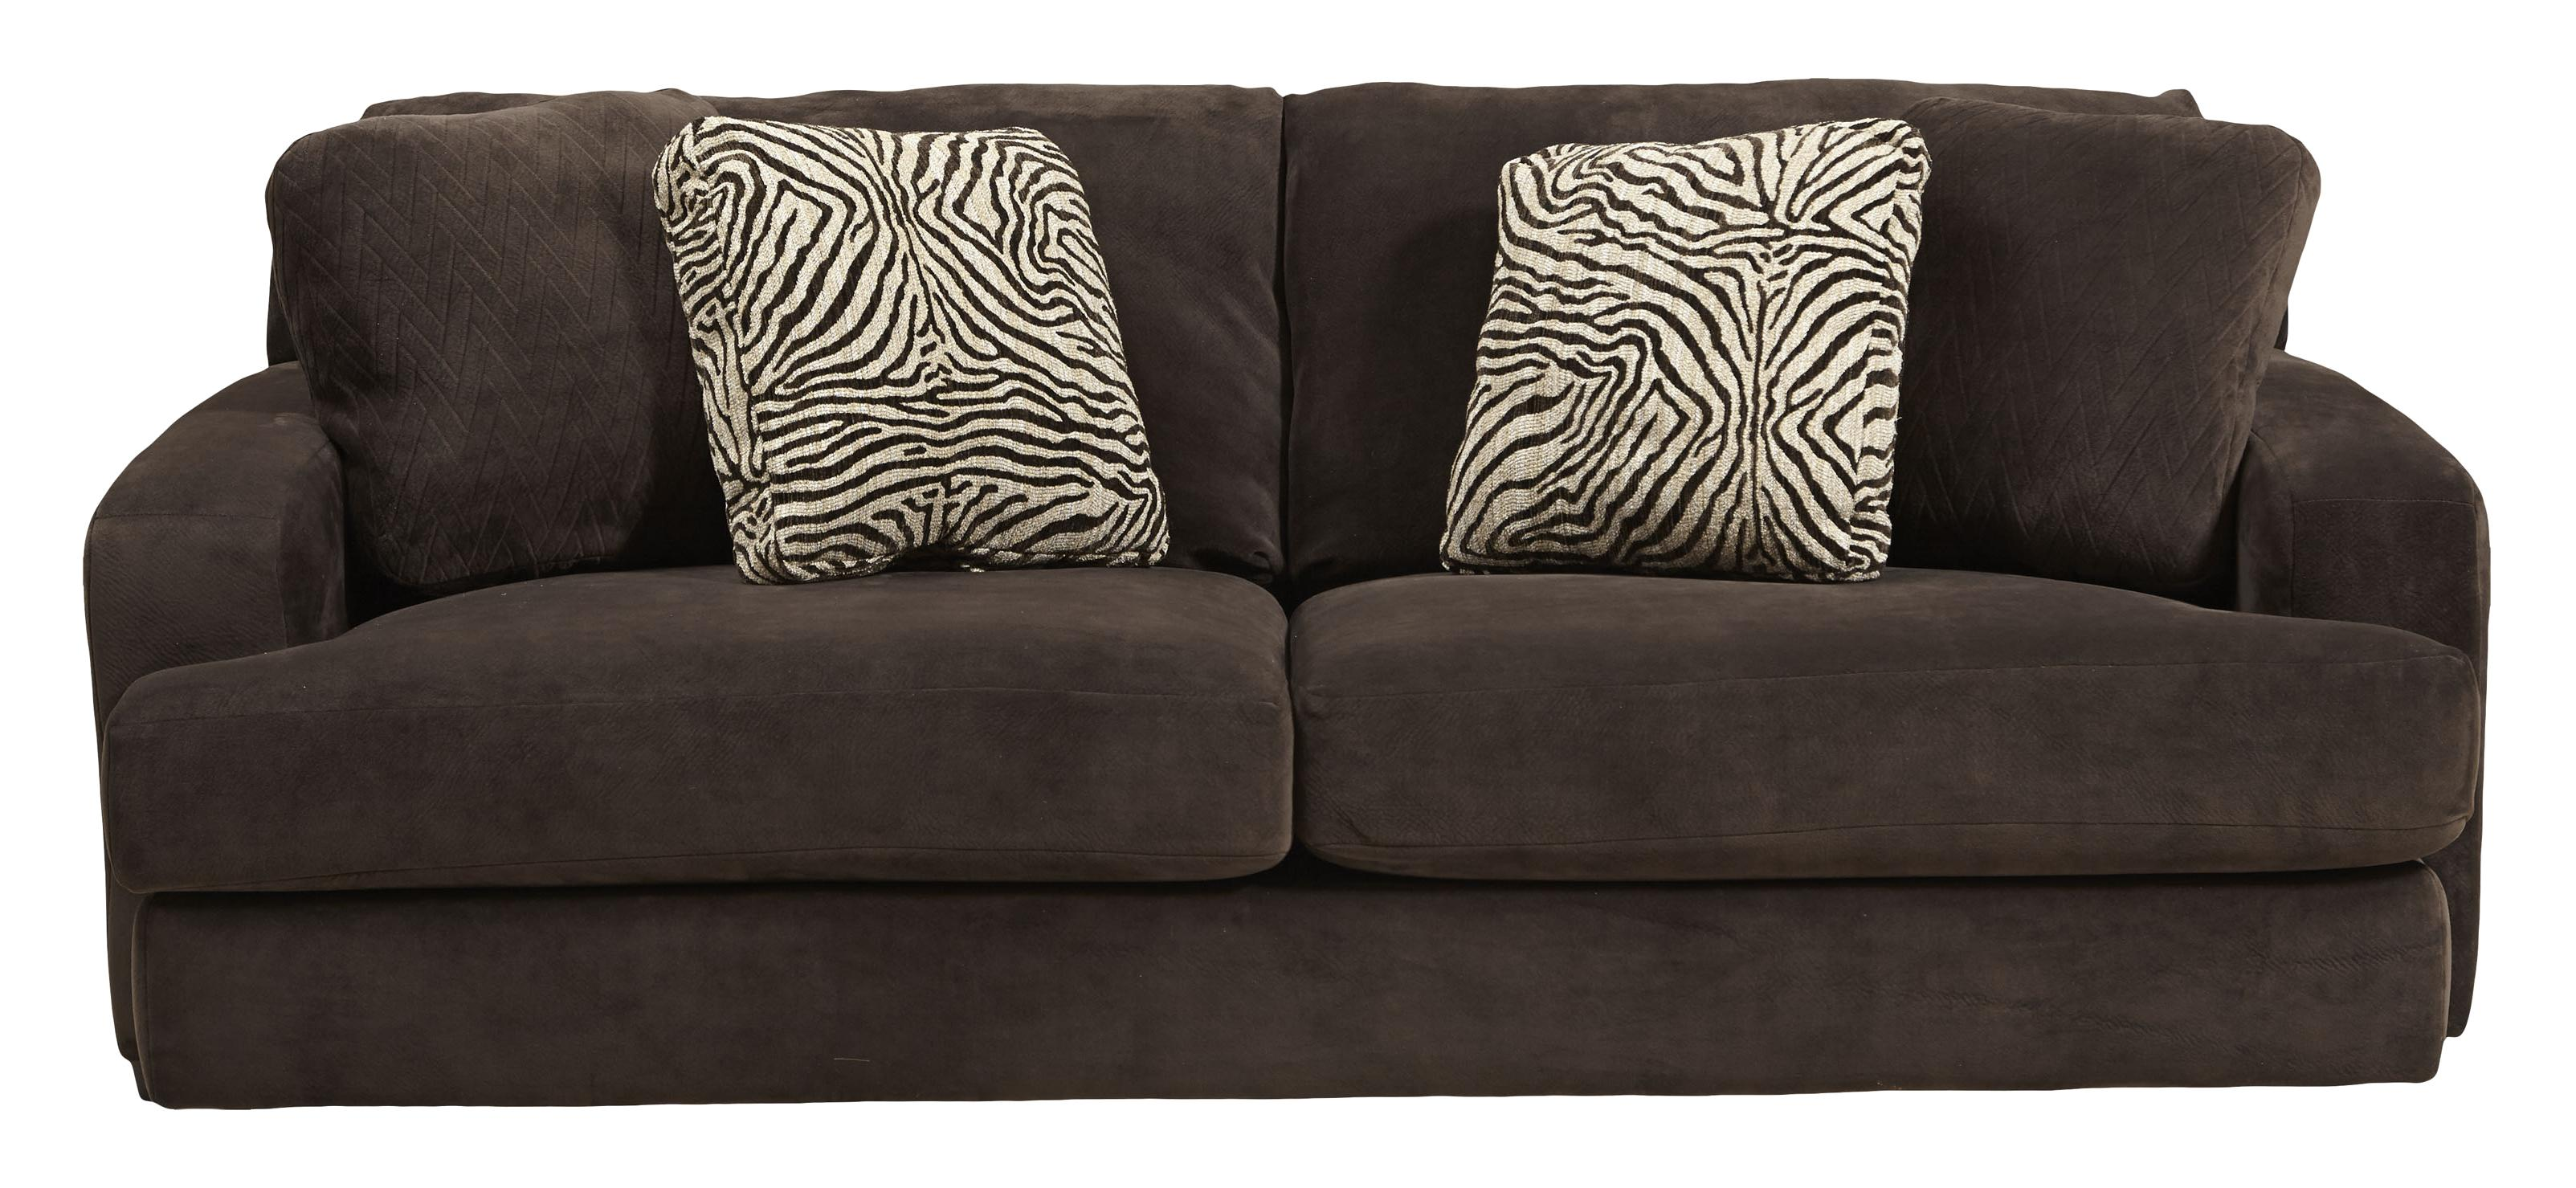 Jackson Furniture Palisades 4186 03 Casual Modern Sofa Efo Furniture Outlet Sofas